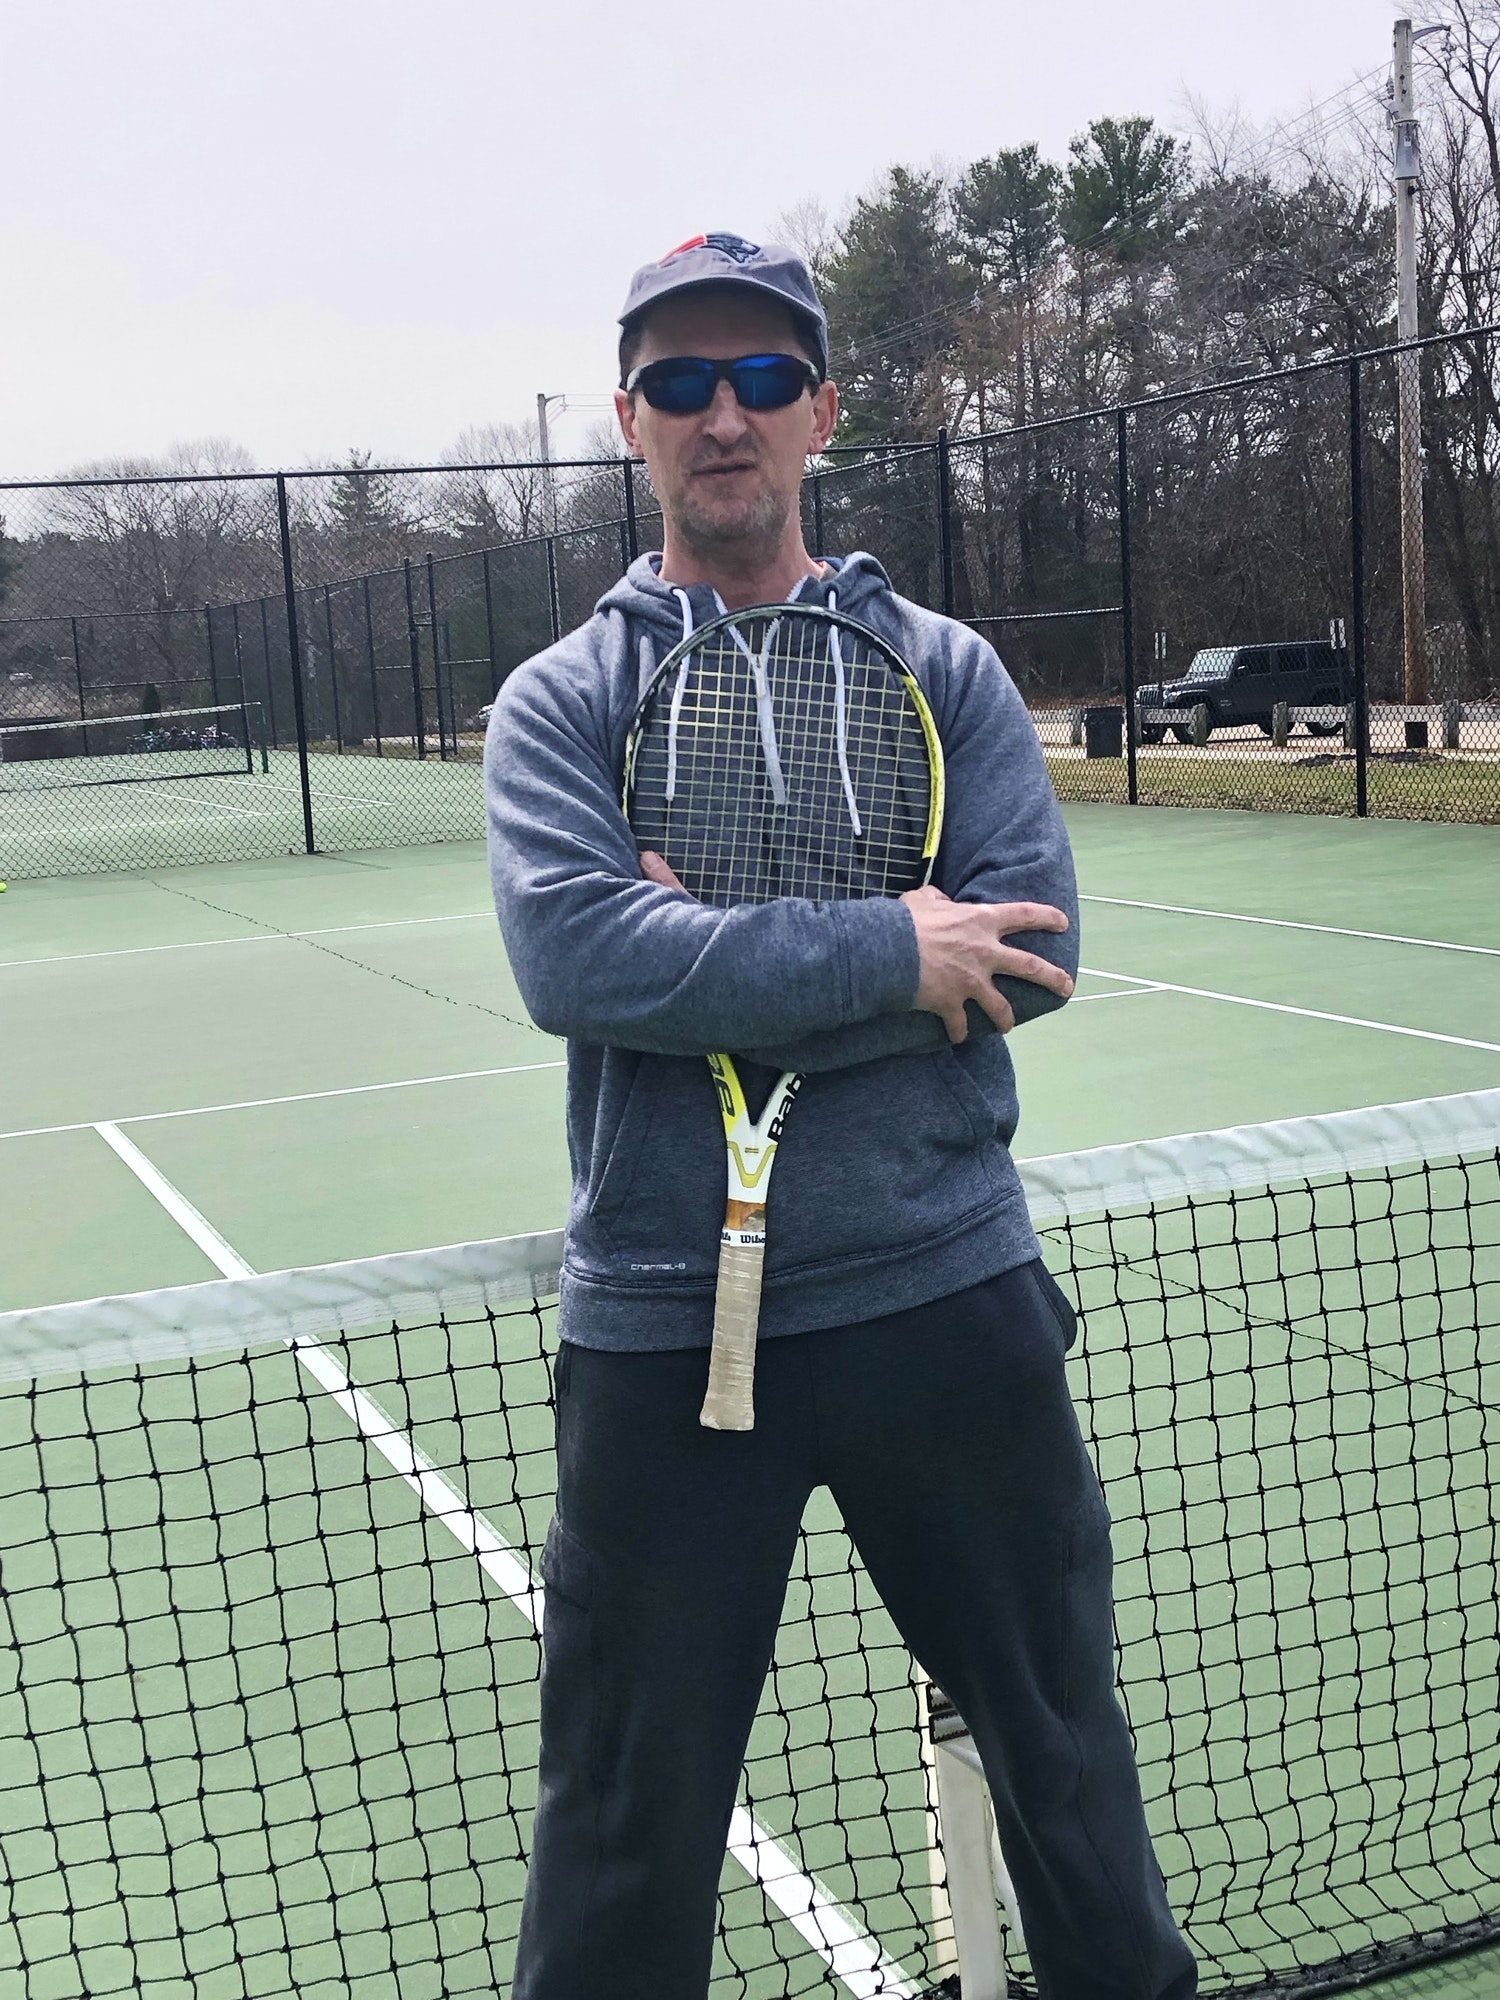 Mike Q. teaches tennis lessons in Braintree , MA